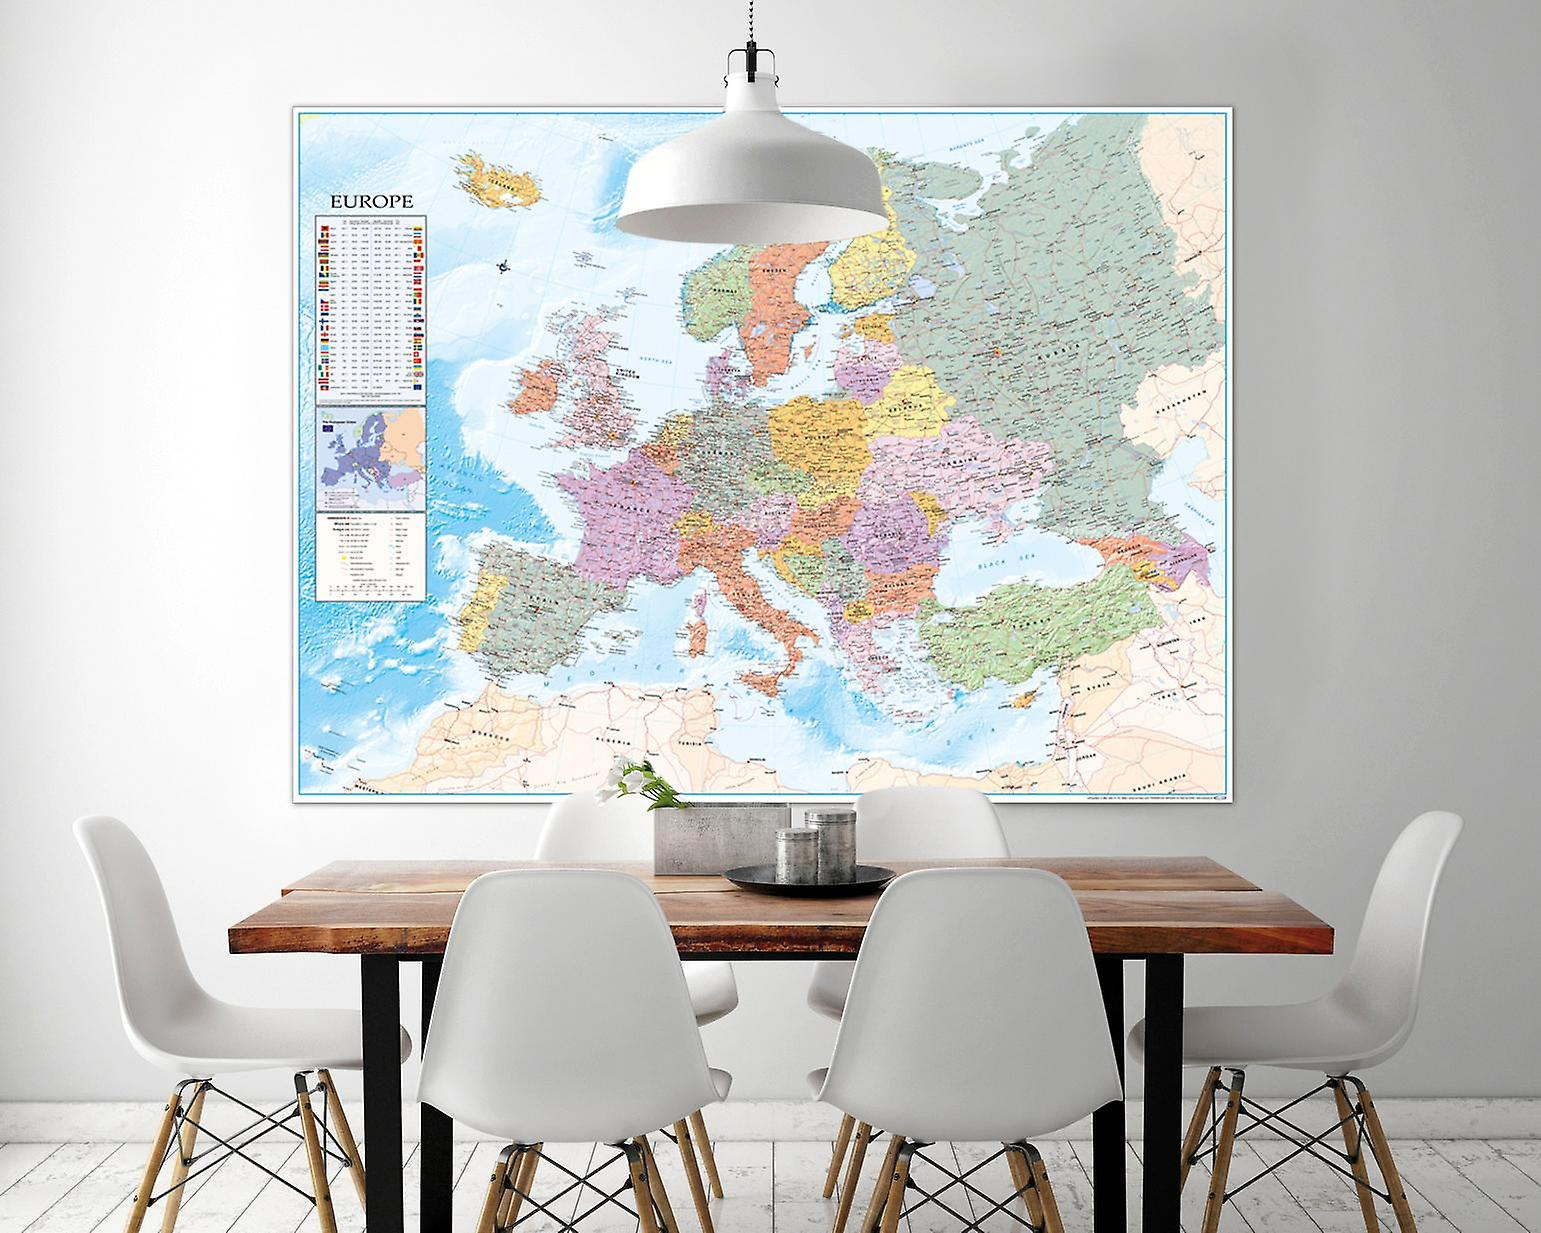 Map Of Europe Xxl Poster Flags English 135 X 100 Cm Giant Poster